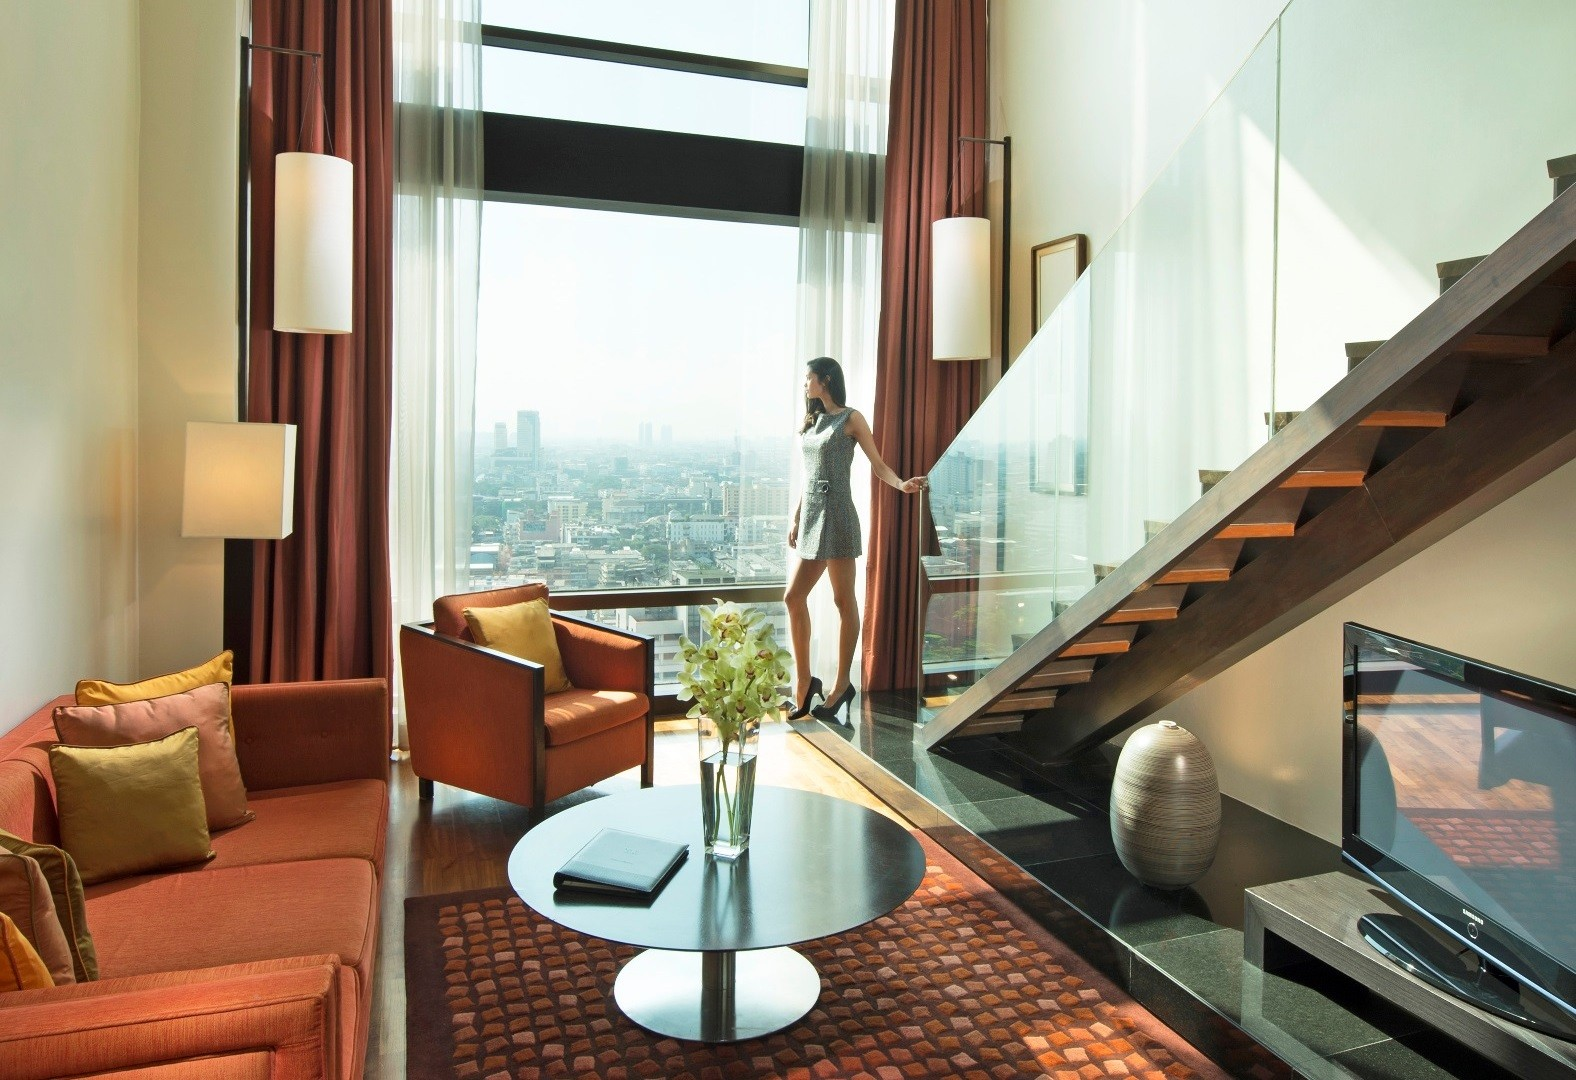 2 bedroom hotel suites. vie duplex 2 bedrooms suite Grand Duplex Bedroom Hotel Bangkok  VIE by MGallery